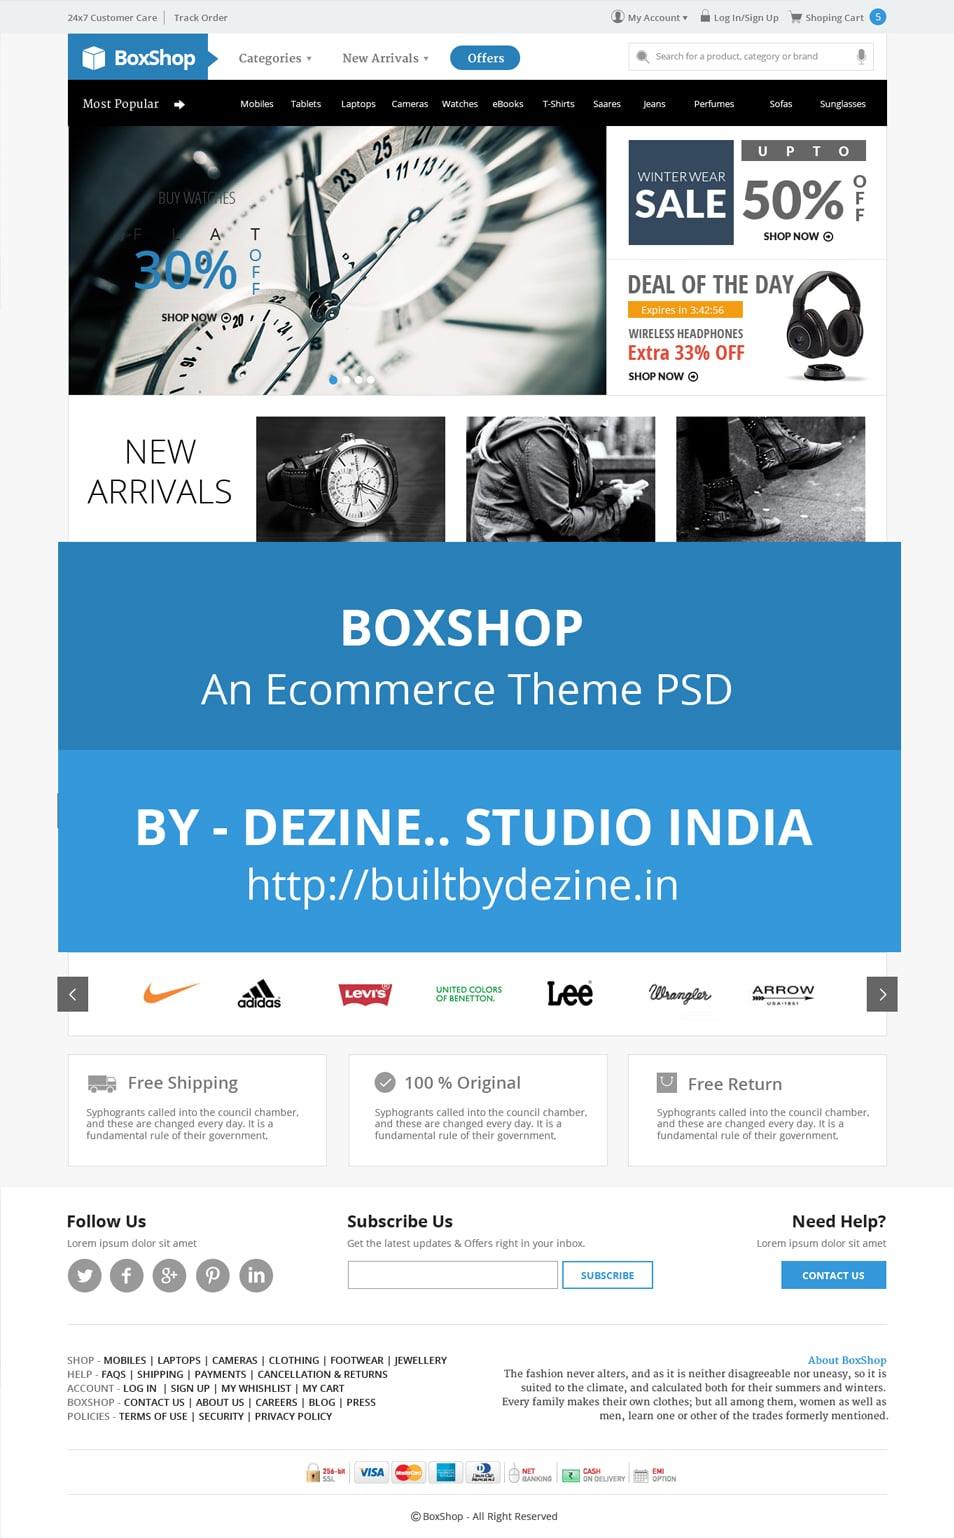 BoxShop - Free Ecommerce Website PSD Template